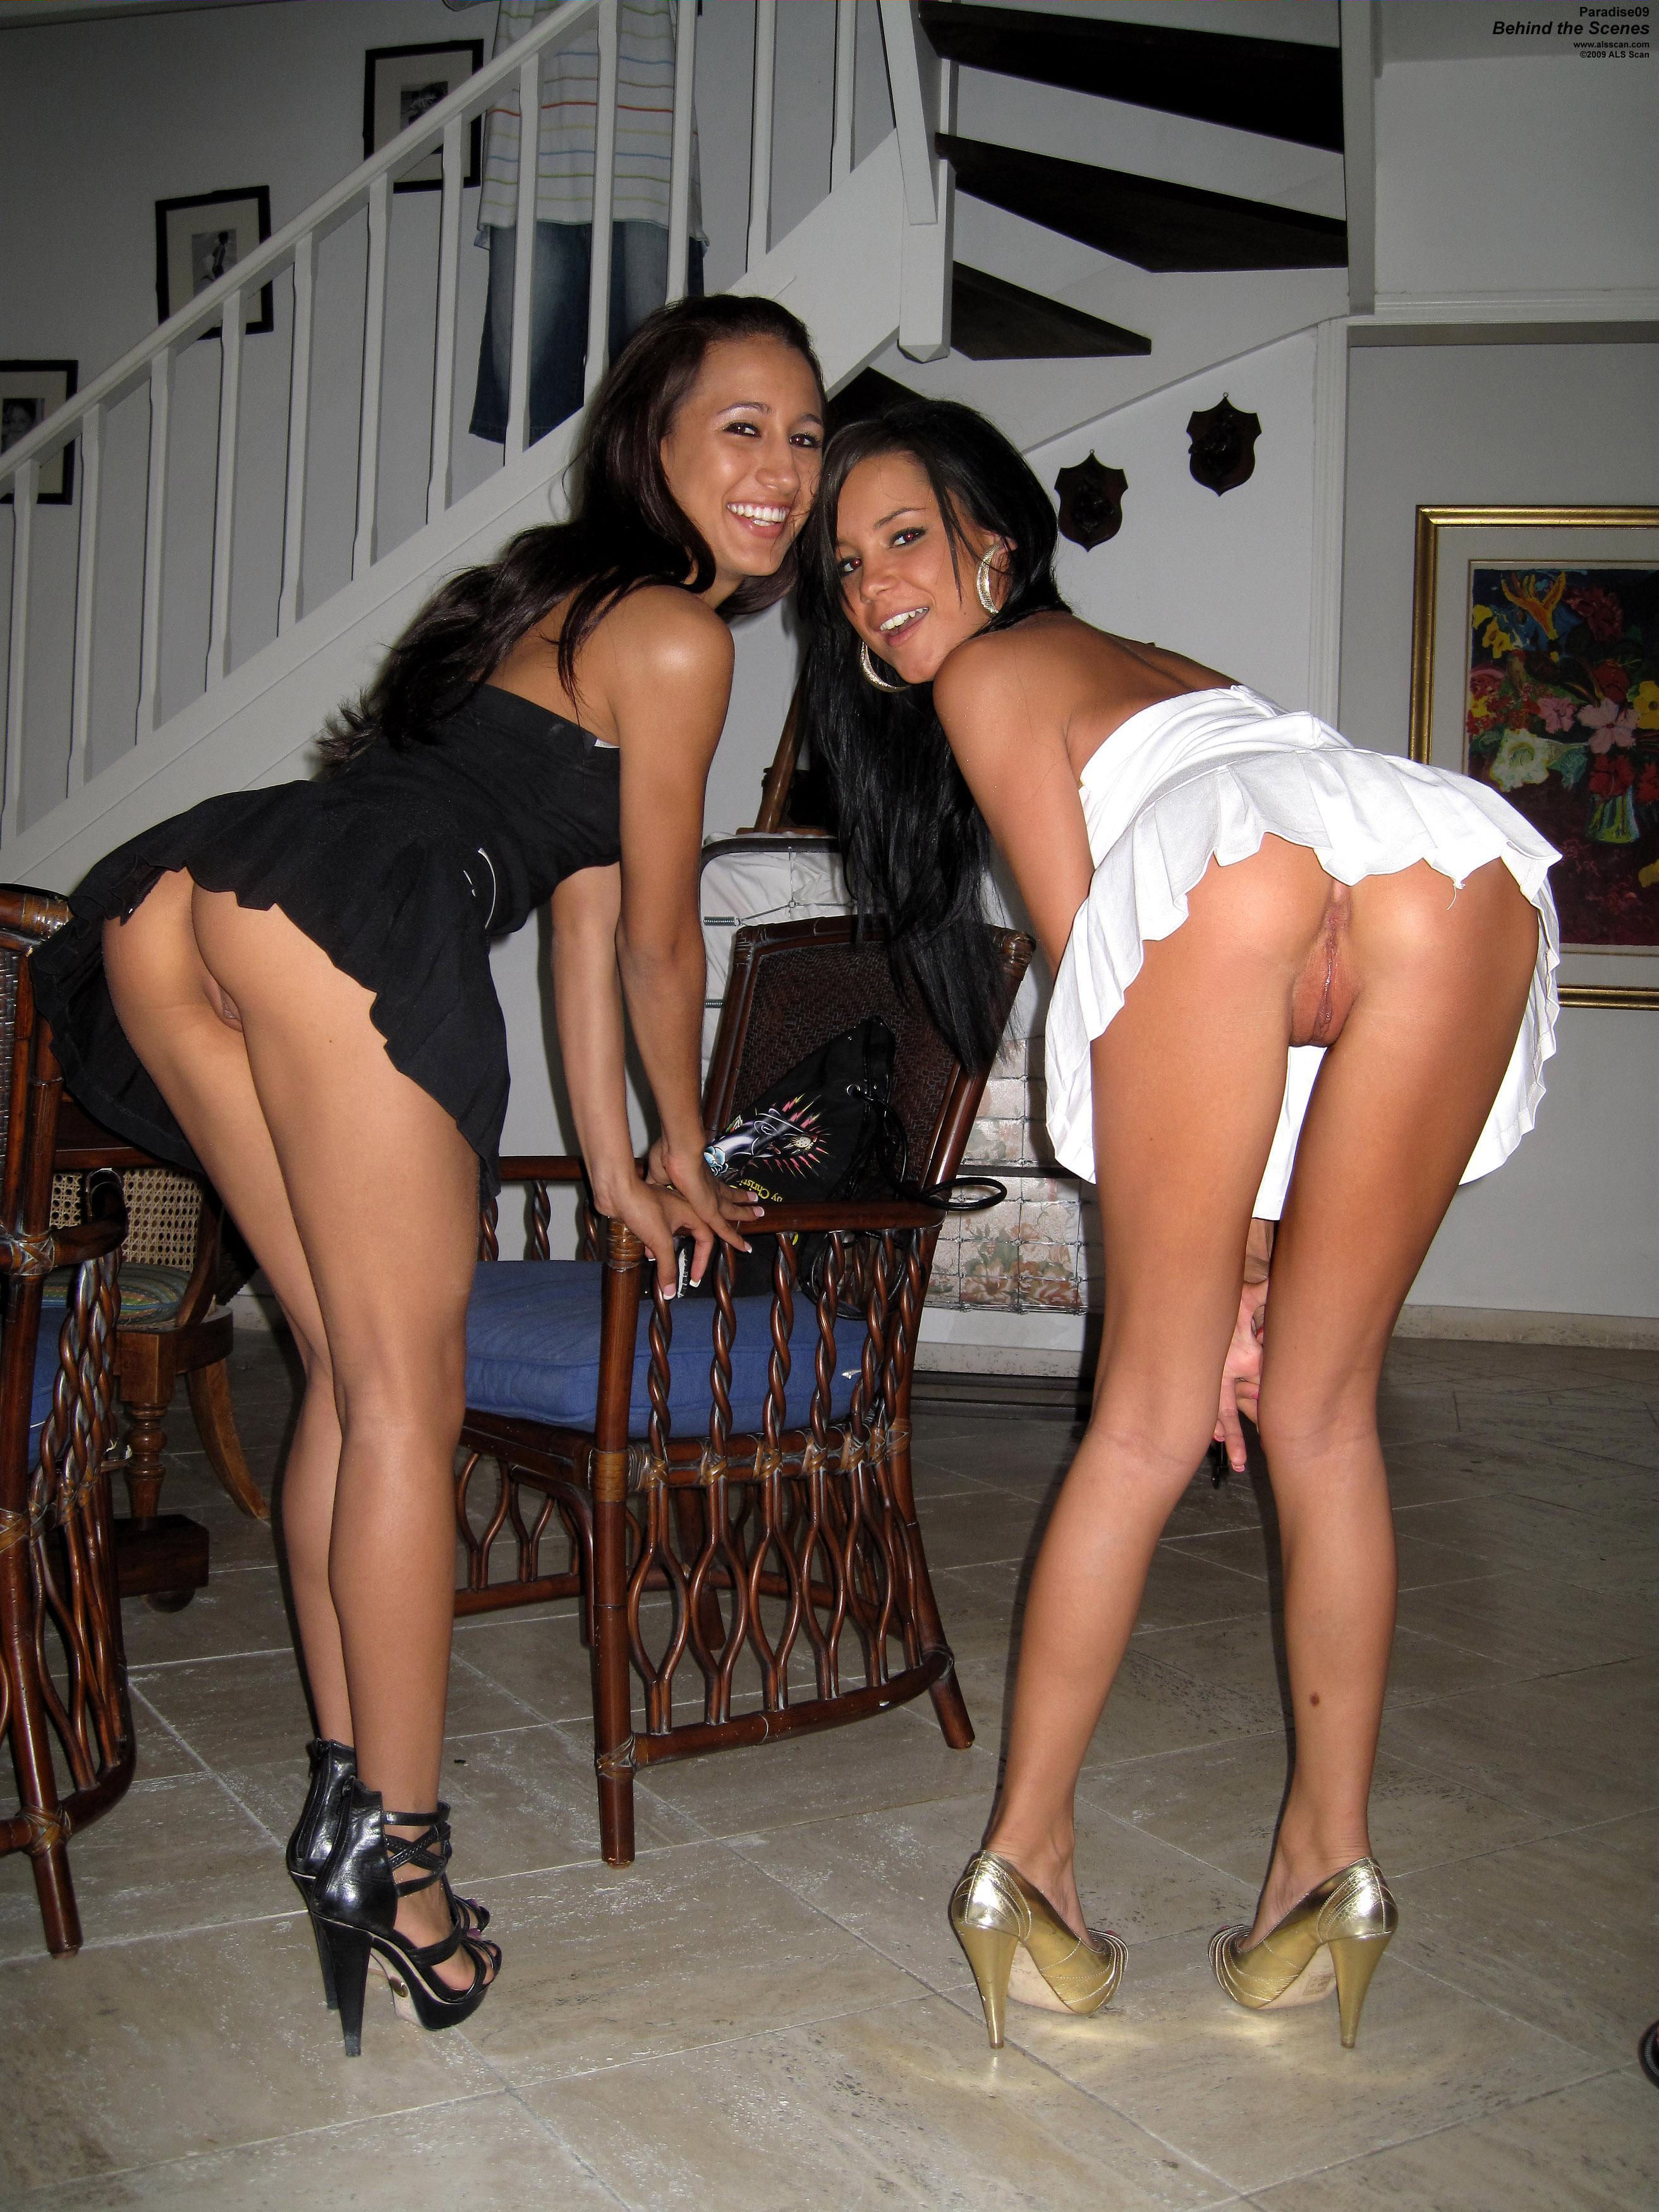 Upskirt pussy party